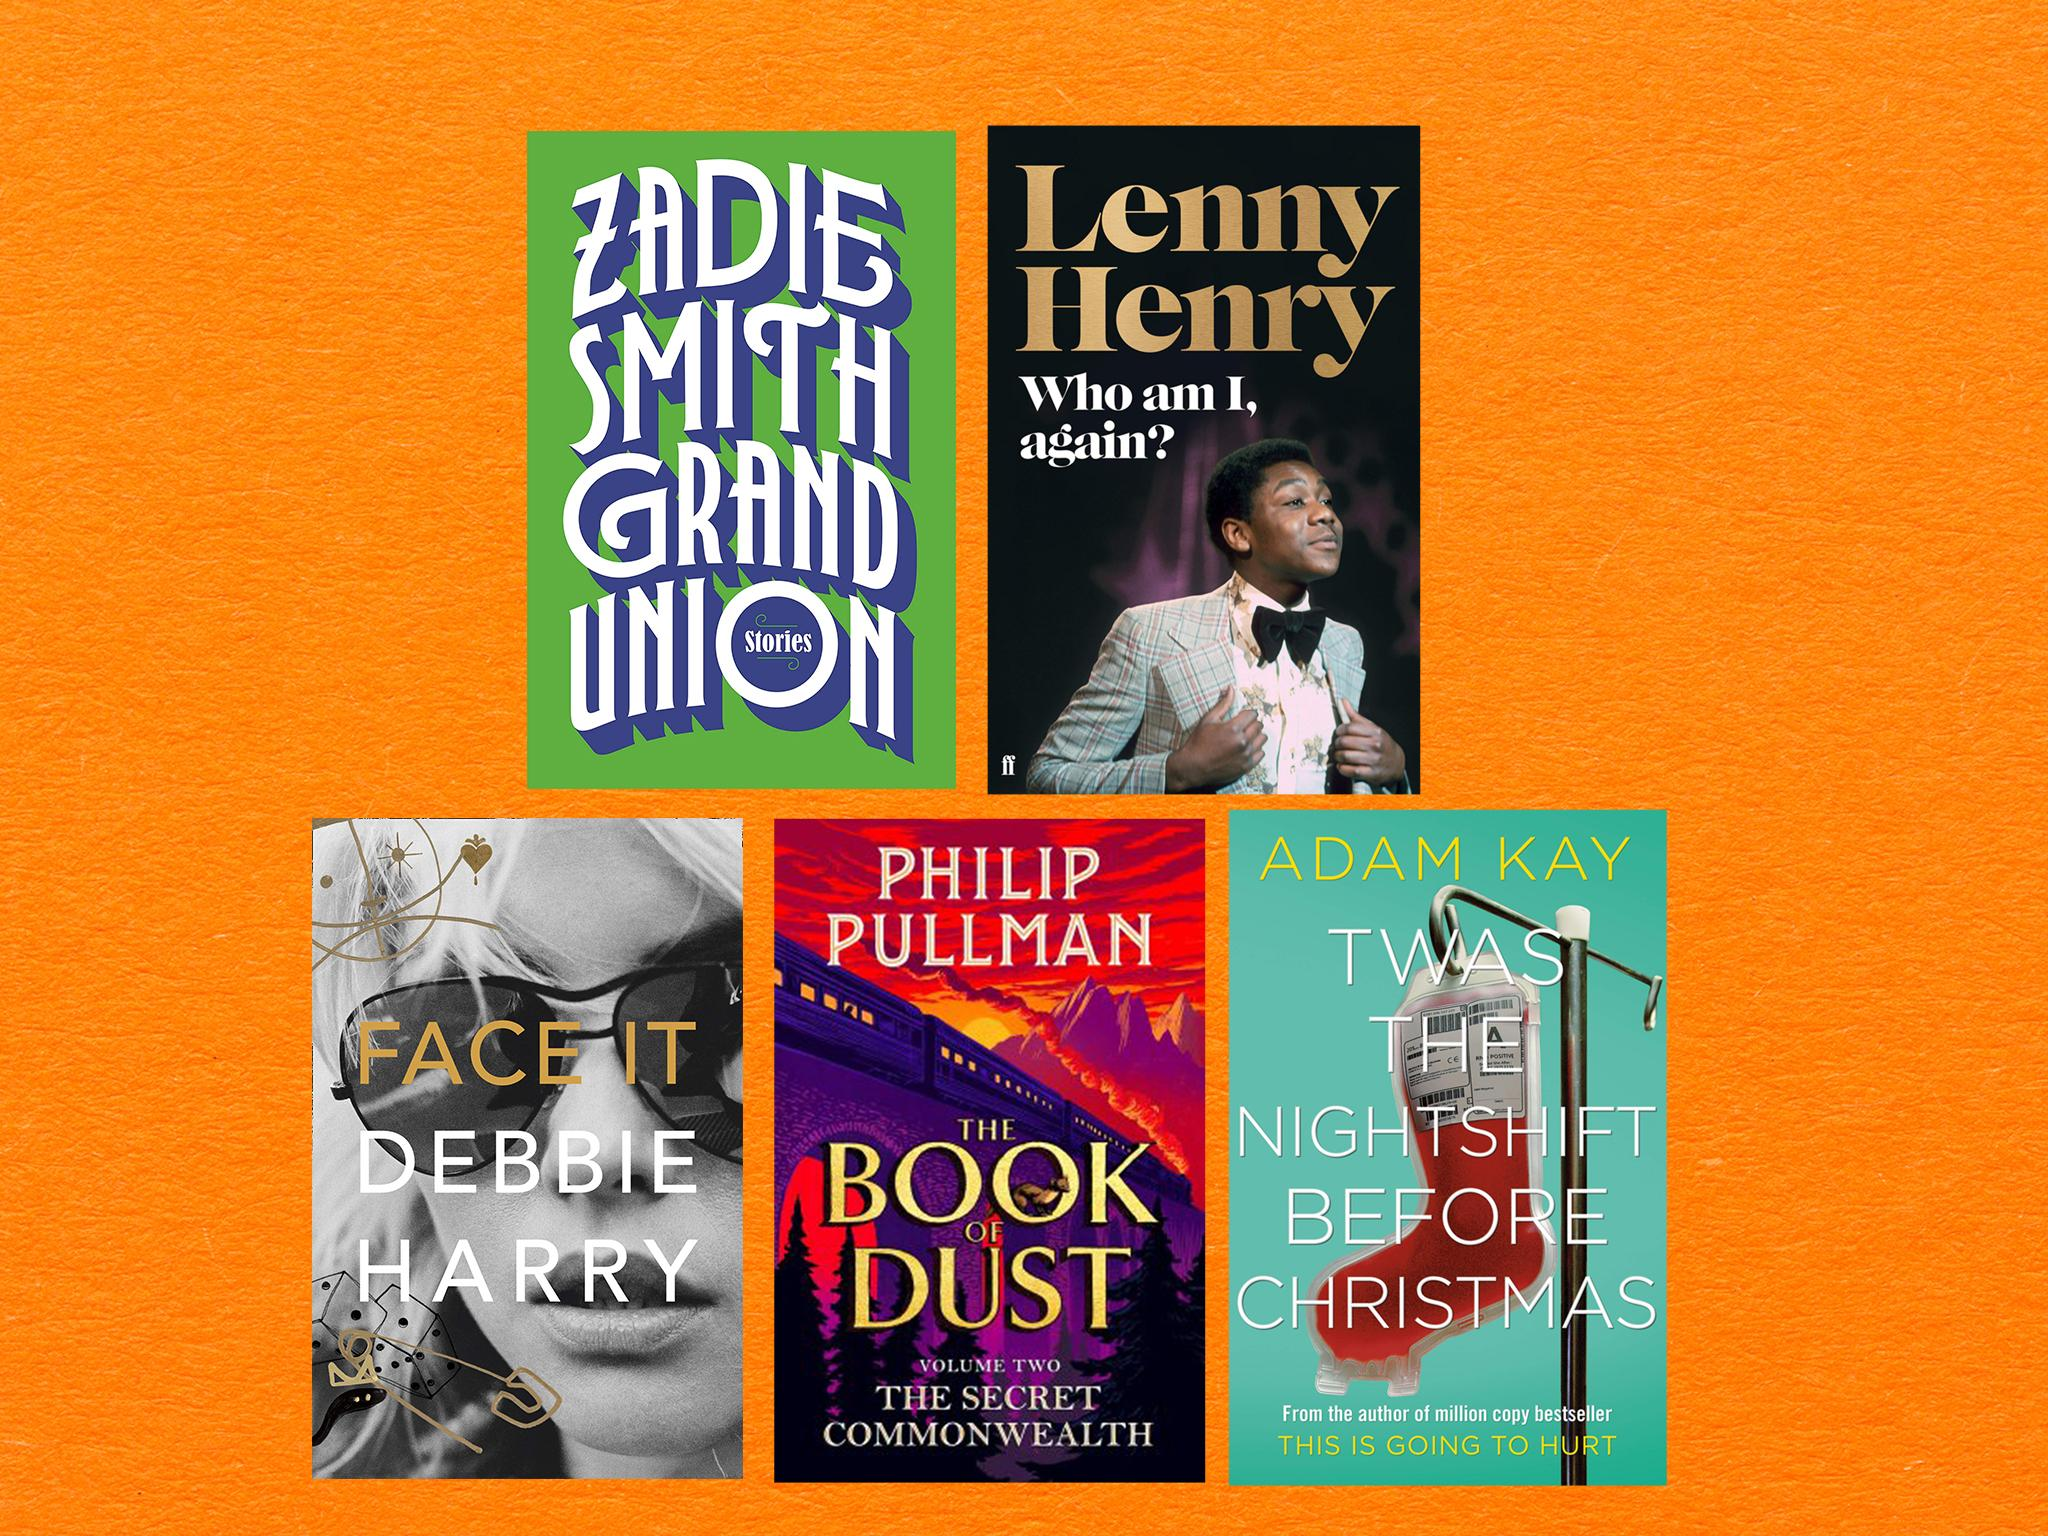 Books of the month: From Philip Pullman's The Secret Commonwealth to Zadie Smith's Grand Union